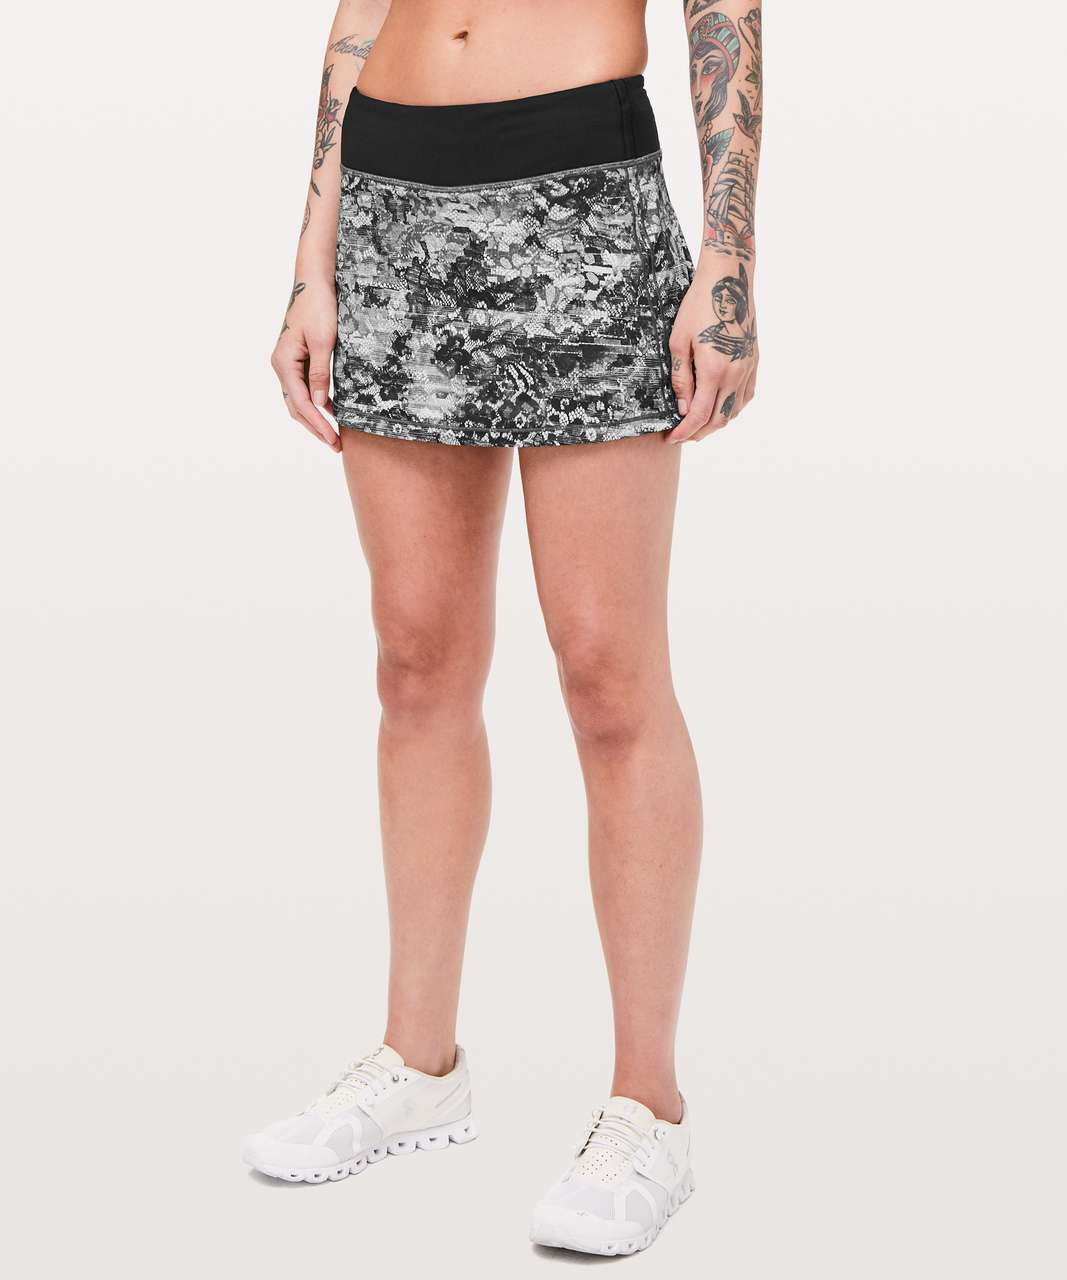 "Lululemon Pace Rival Skirt (Regular) *No Panels 13"" - Masked Lace Starlight Black / Black"